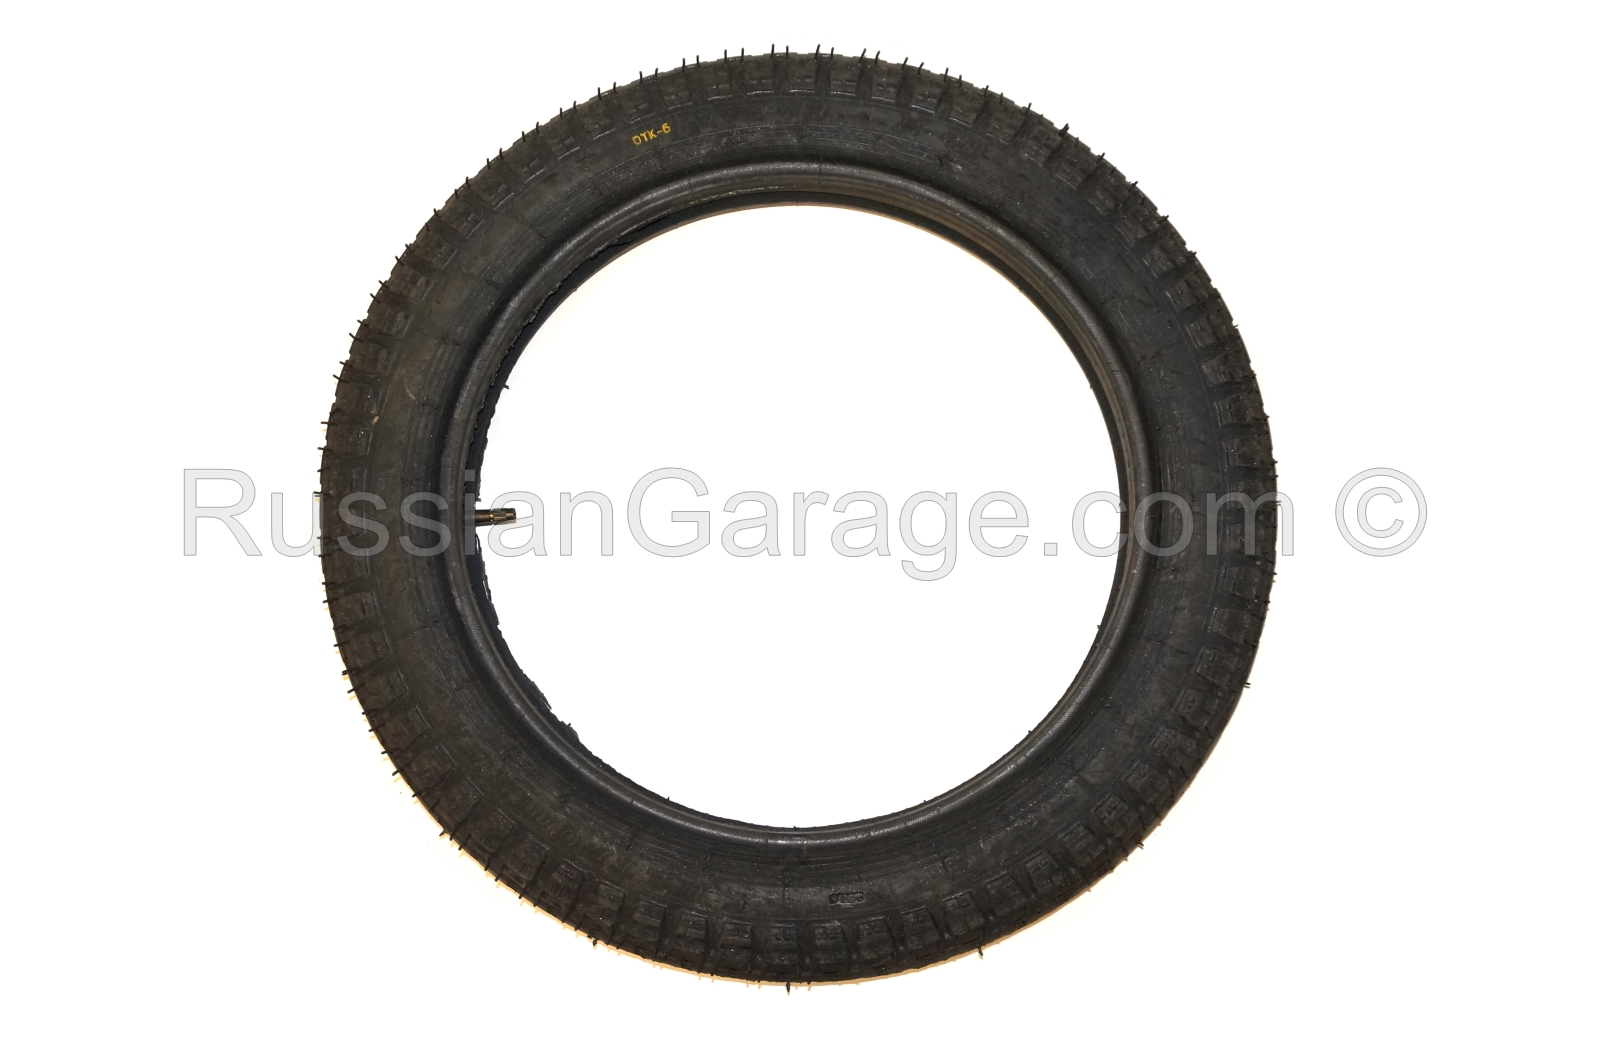 Tire with inner tube 3.75-19